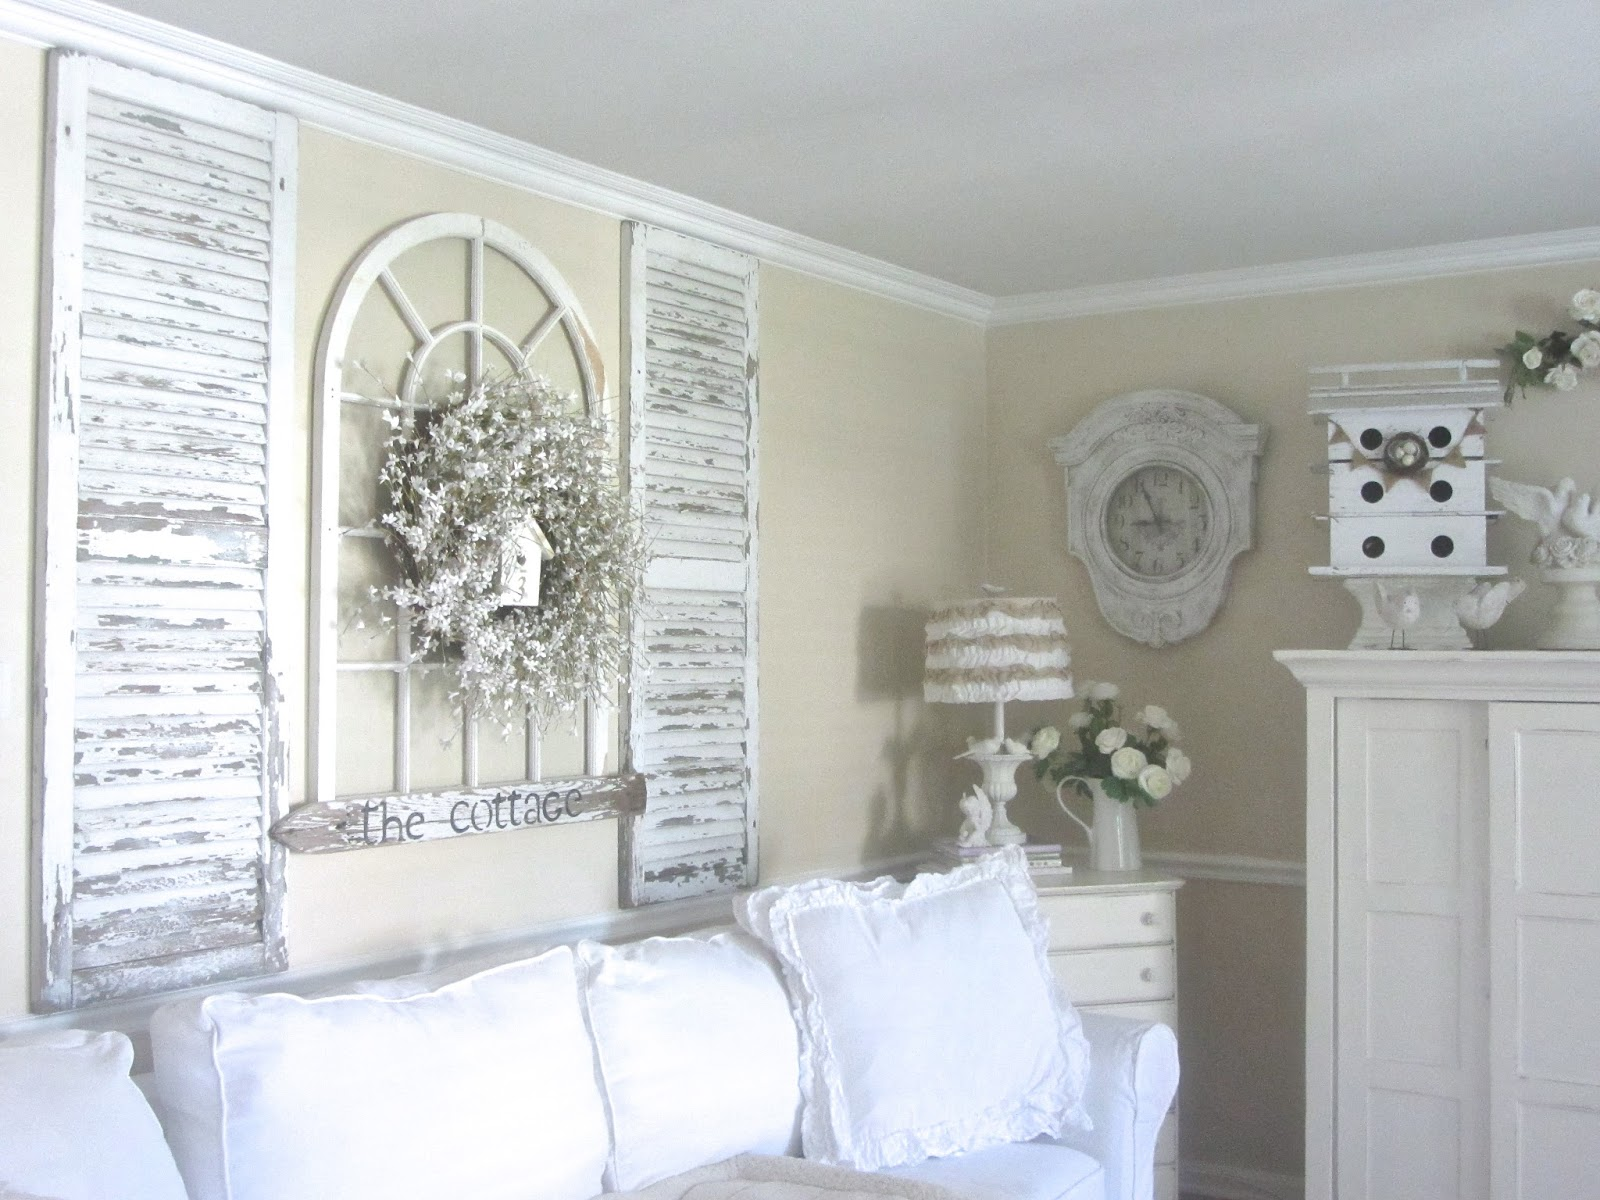 Decorative Shutters Wall Decor : Junk chic cottage update on guest room and new treasures